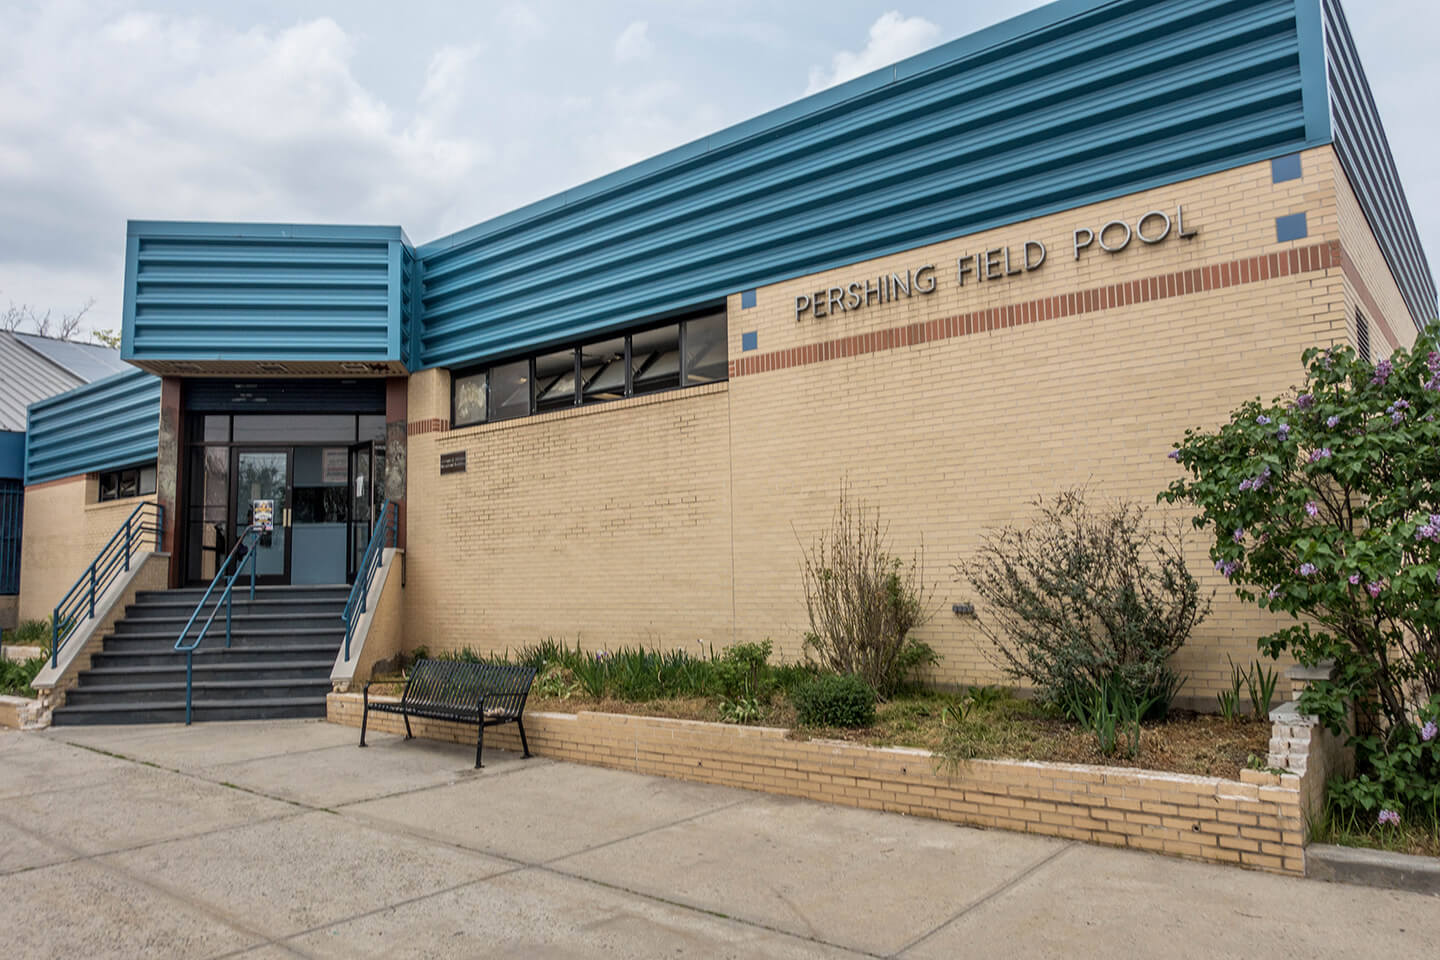 pershing-field-pool